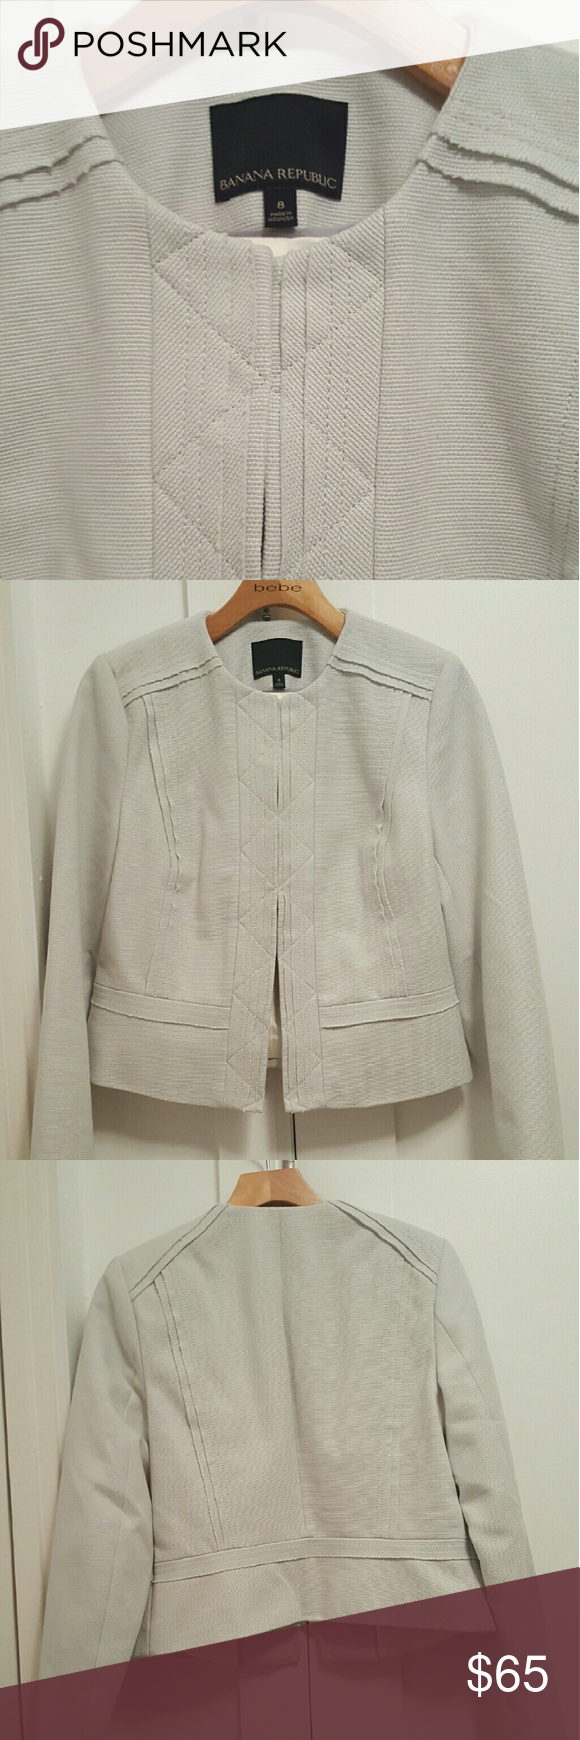 Banana Republic Jacket Light blue grey blazer, hook closure, never worn, size 8, purchased in the spring of this year. Perfect condition. Banana Republic Jackets & Coats Blazers